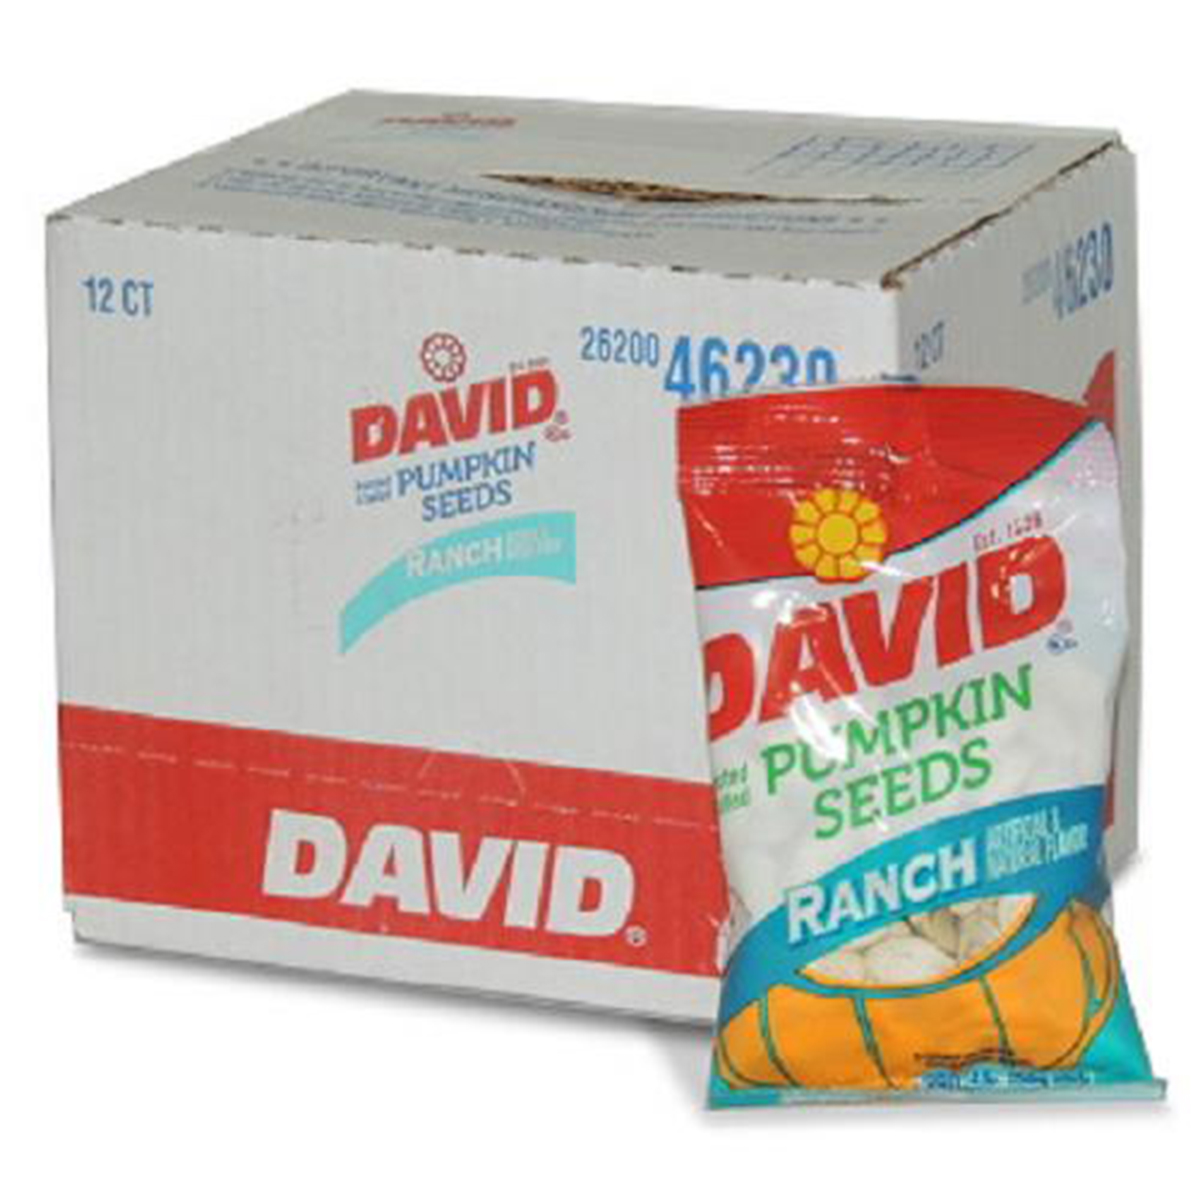 Product Of David, Pumpkin Seeds Ranch , Count 12 (2.25 oz) - Sunflower Seeds / Grab Varieties & Flavors